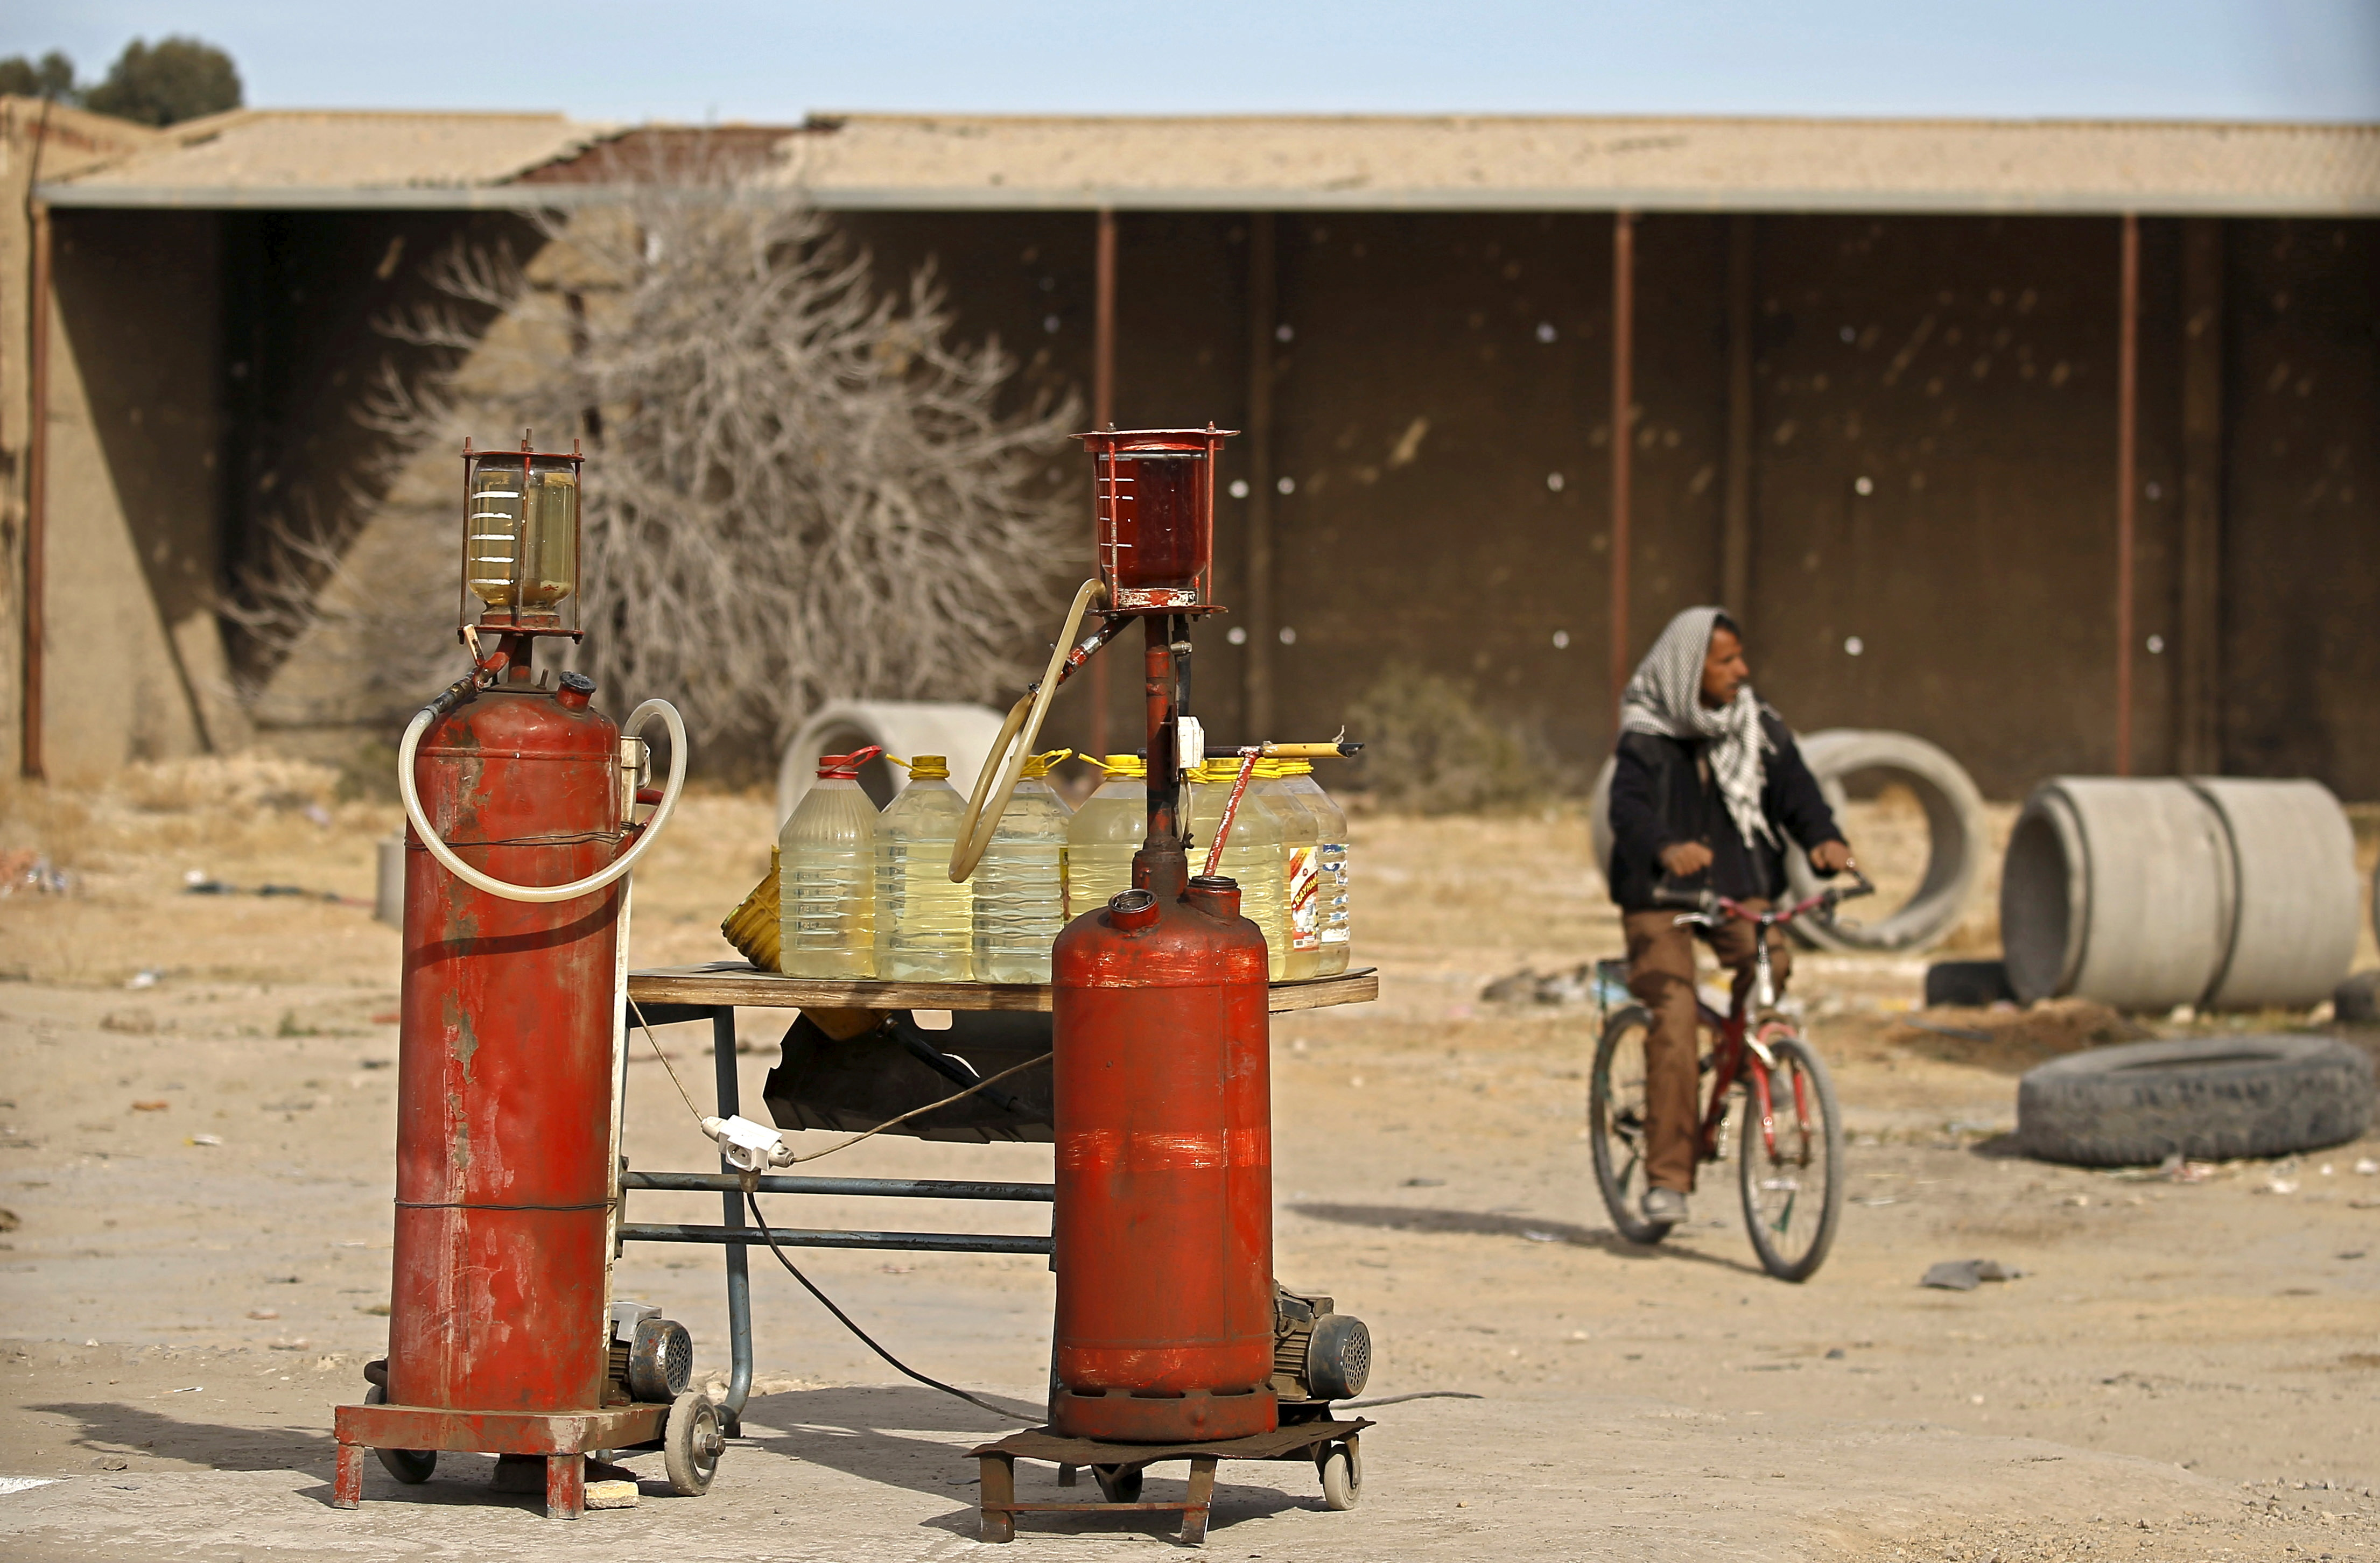 A man rides a bicycle as he passes tanks of gasoline in Kasserine, Tunisia January 30, 2016. REUTERS/Zohra Bensemra/File Photo